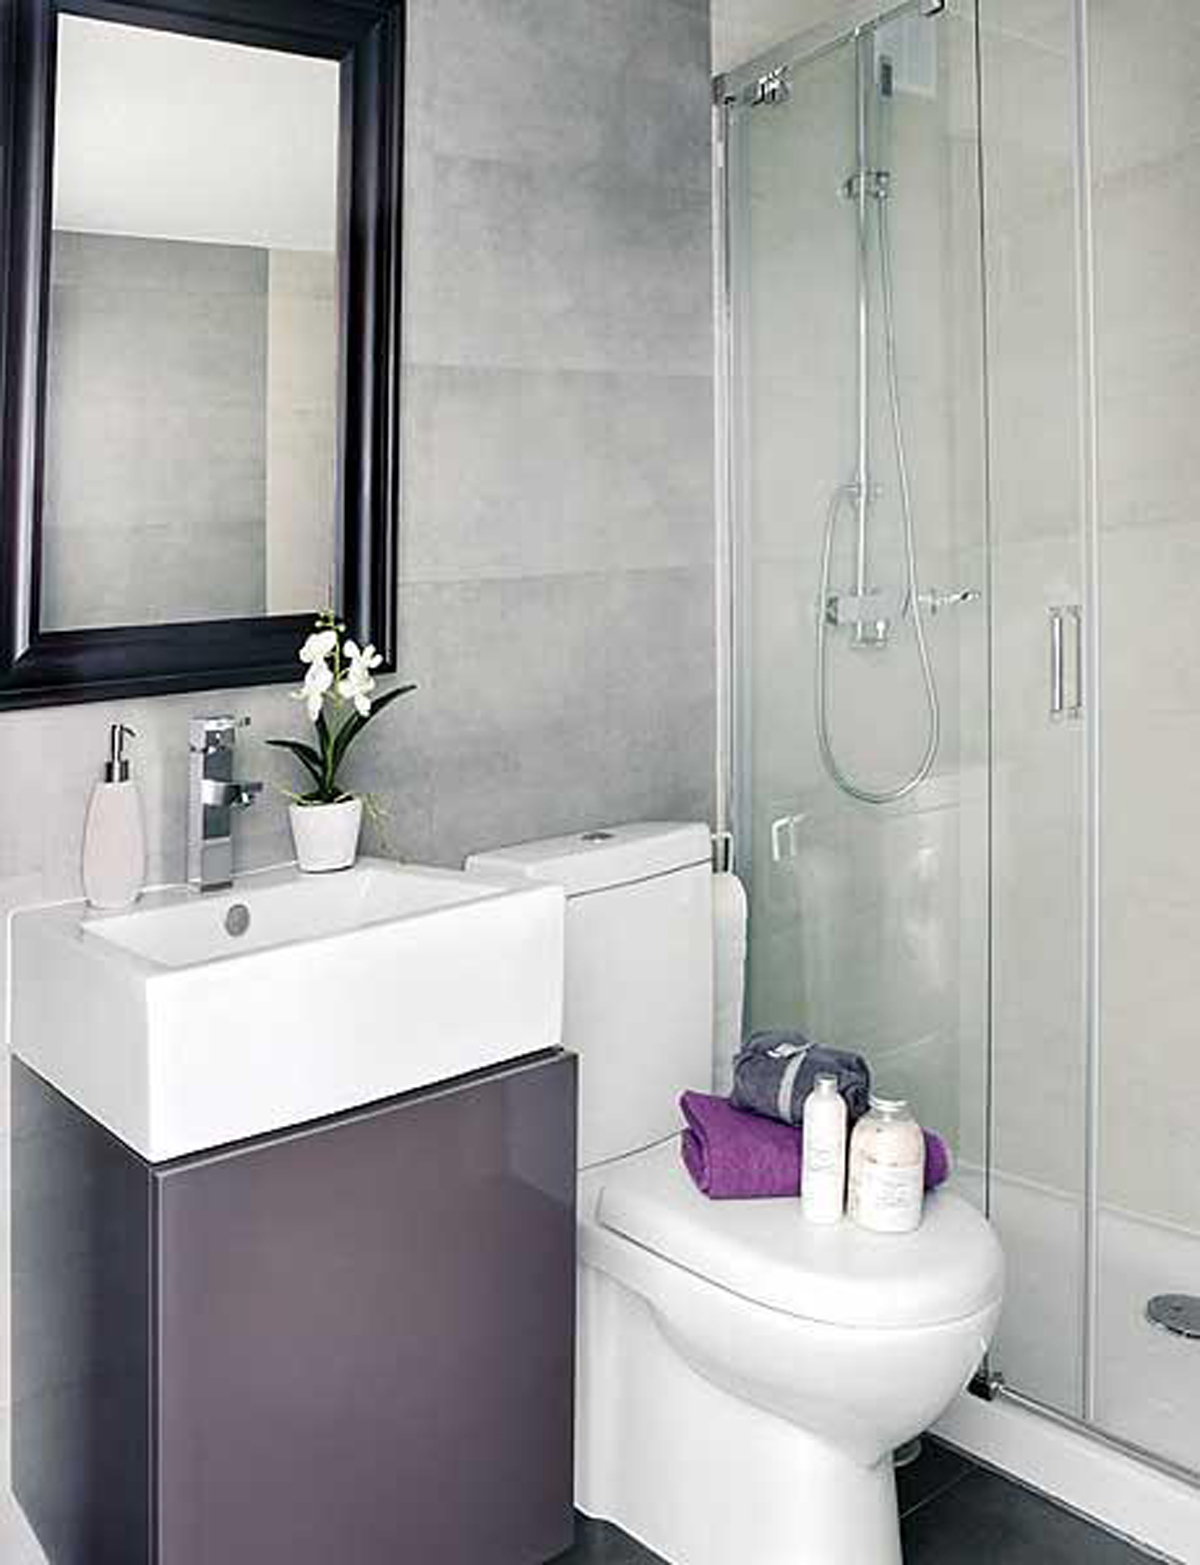 ... Interior Inspiring Apartment Design Bathroom Design Interior Small  ...